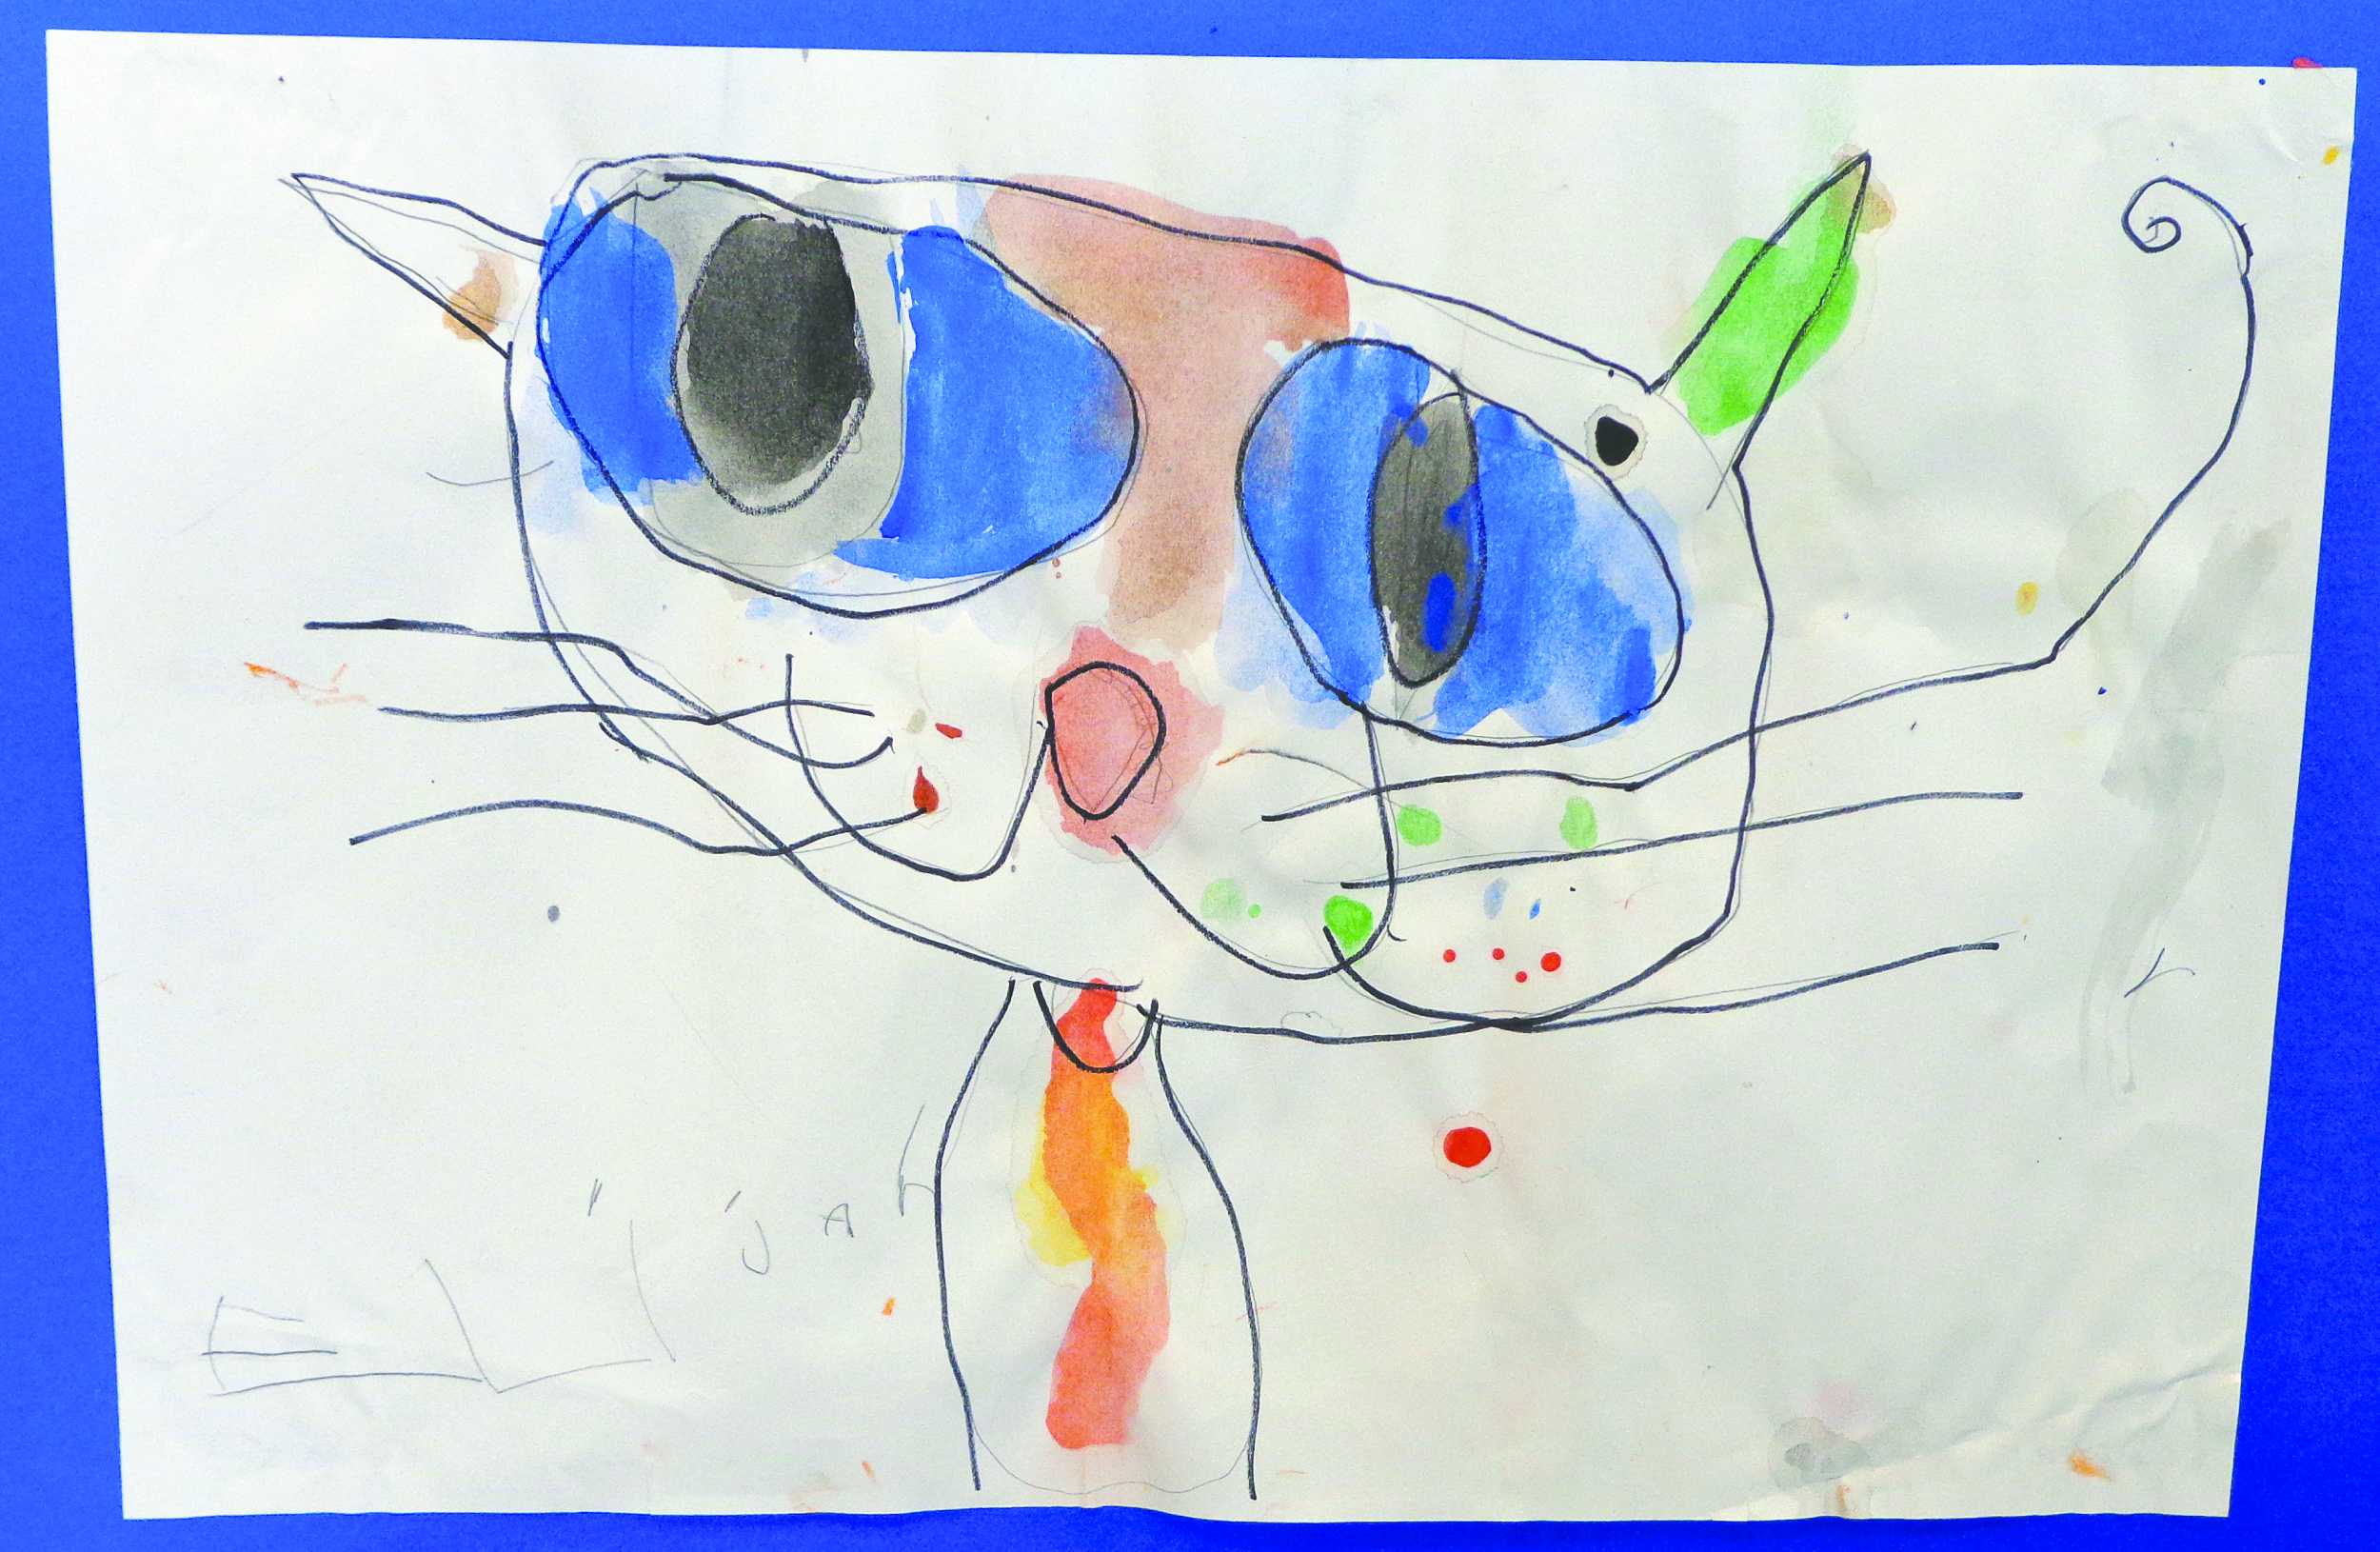 This incredible cat drawing by Elijah Hoxley was featured at the 2013 exhibit at the Oliver Art Center. See what's on display this year from April 18-May 16. Photo by Aubrey Ann Parker.